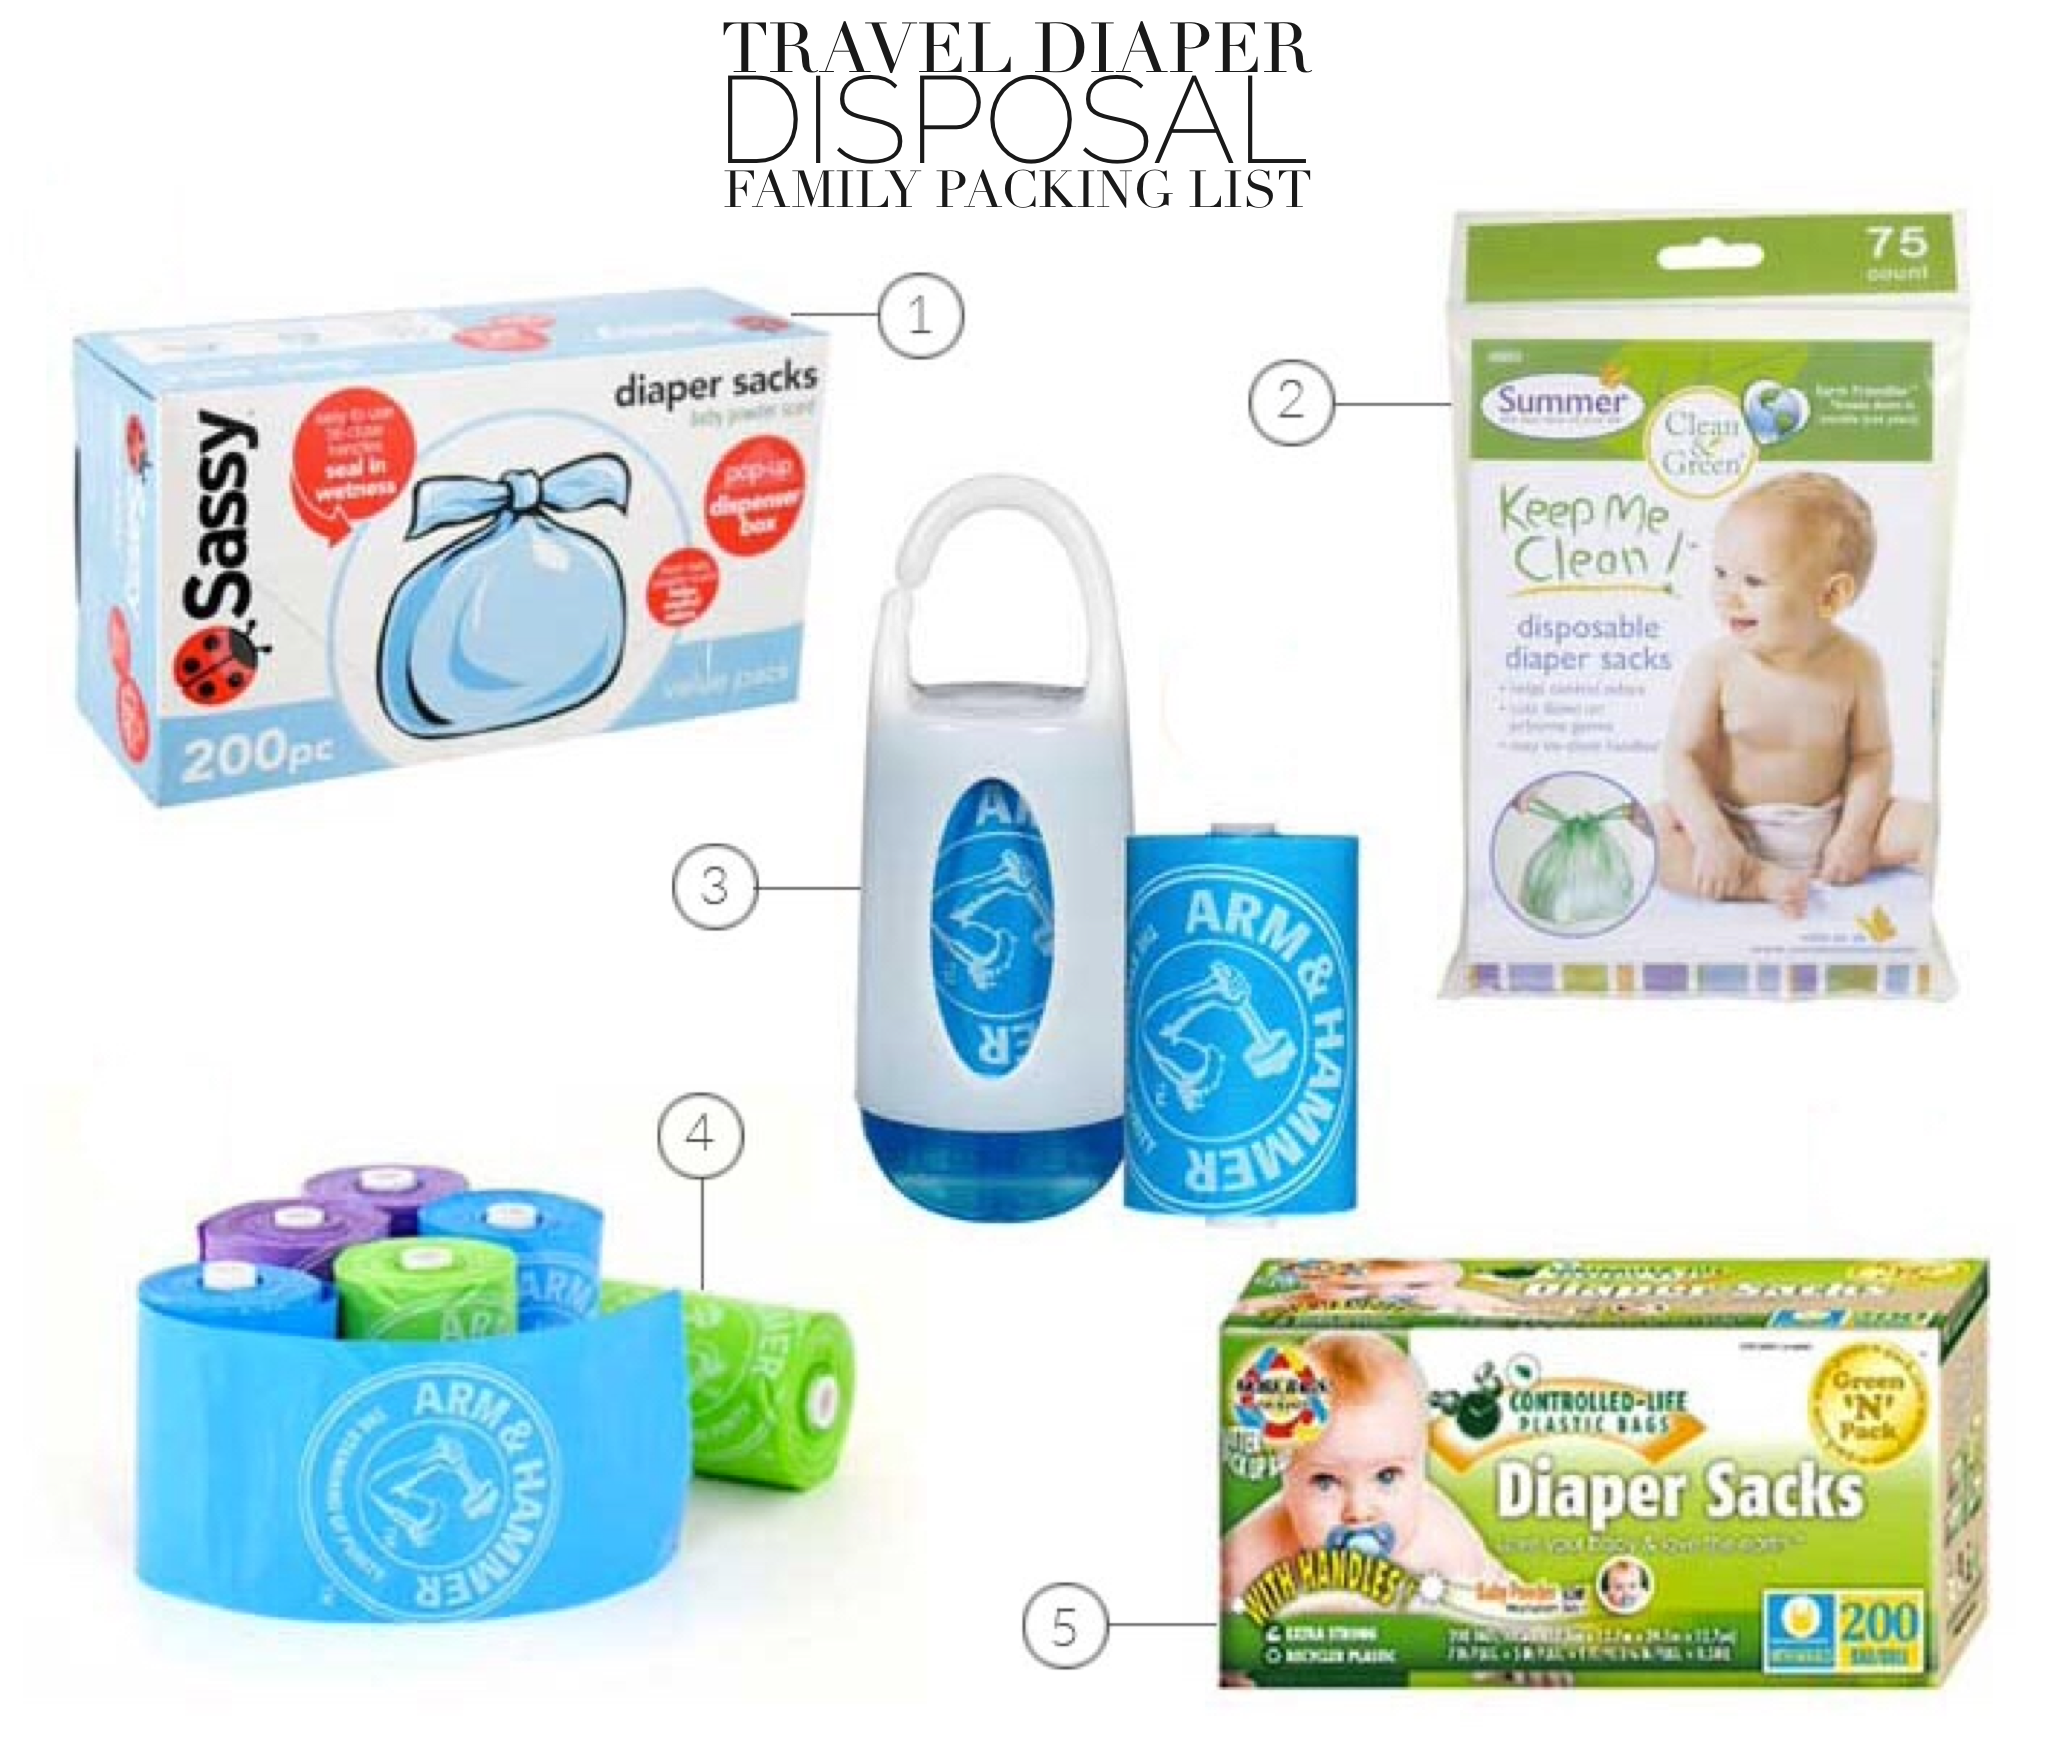 Tablet Family Ng List 1 Sassy Baby Disposable Diaper Sacks